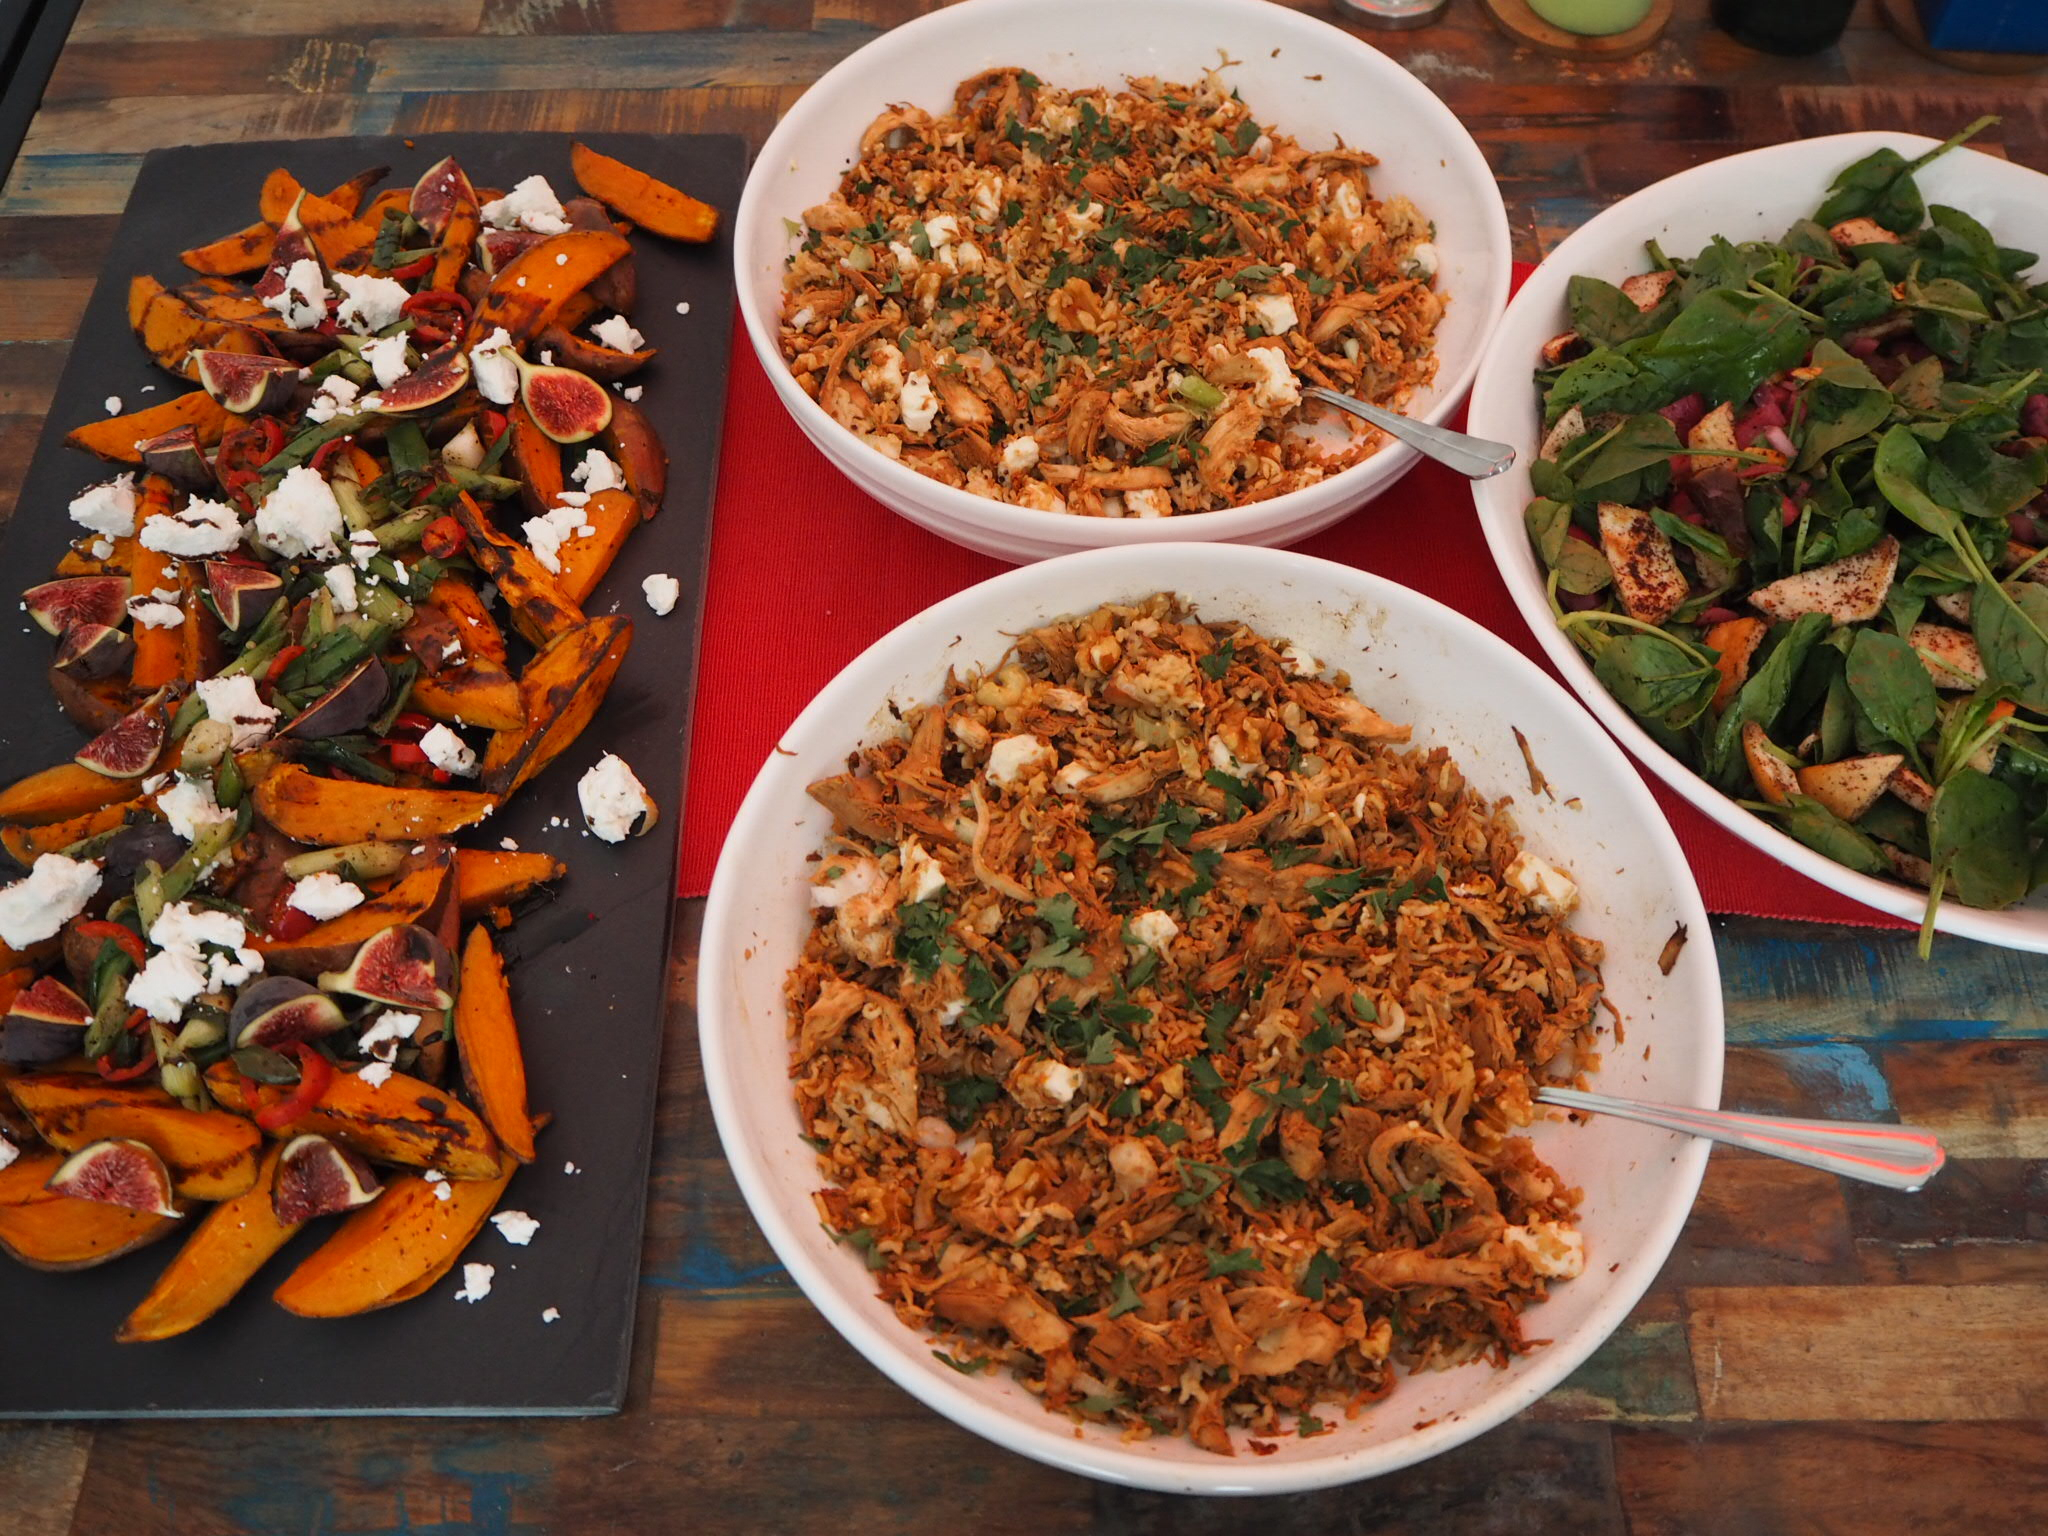 Recipes courtesy of  Jerusalem  by Ottolenghi and  Kitchen Diaries  by Nigel Slater.